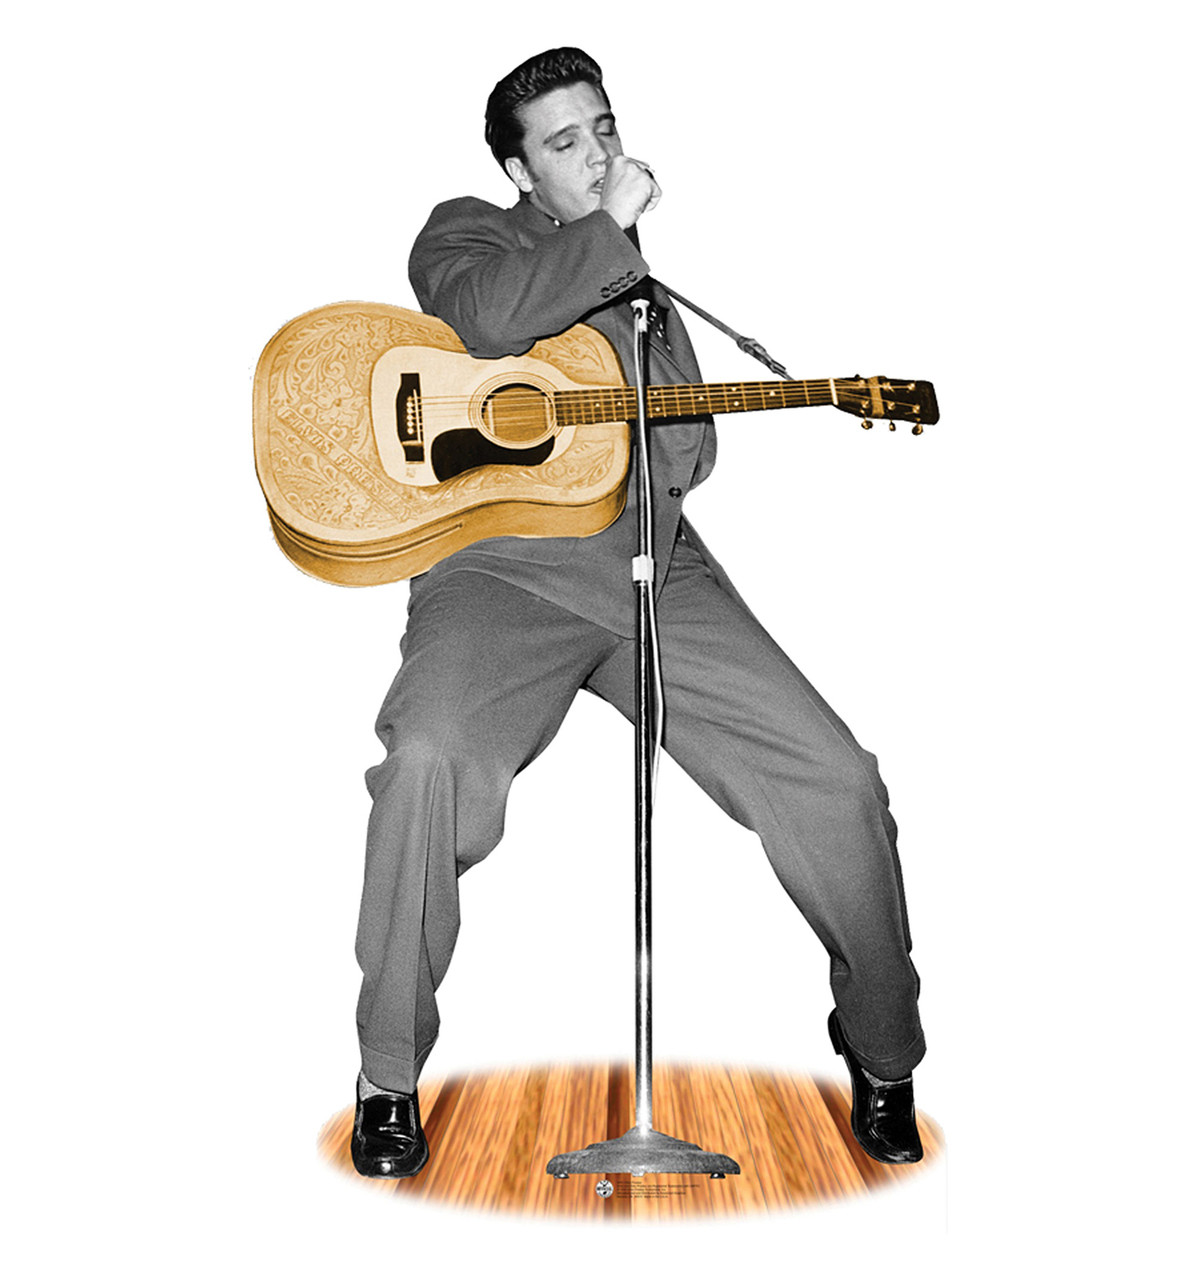 Advanced Graphics 846 Elvis Surfing Life-size Cardboard Stand-up